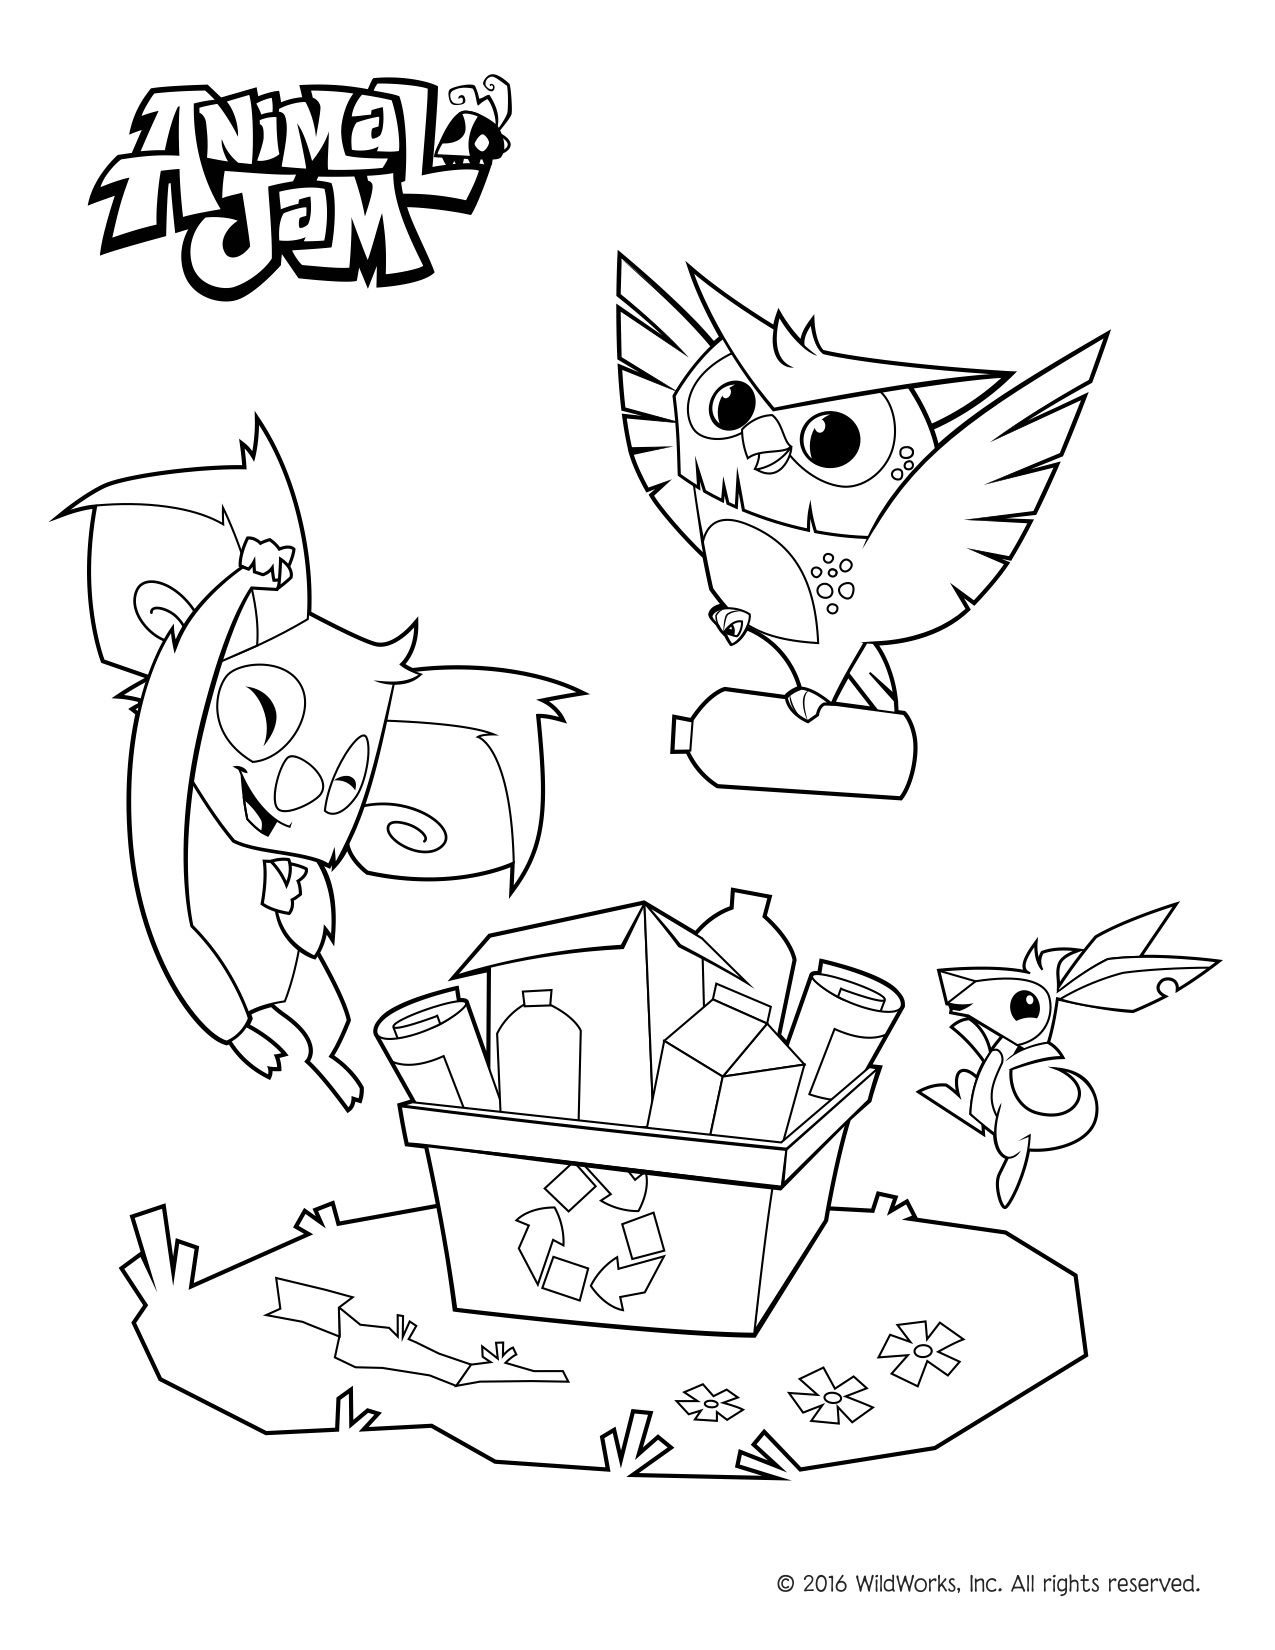 Animal Jam Coloring Pages Celebrate Spring And The Environment With This Free Download Birthday Coloring Pages Animal Jam Animal Coloring Pages